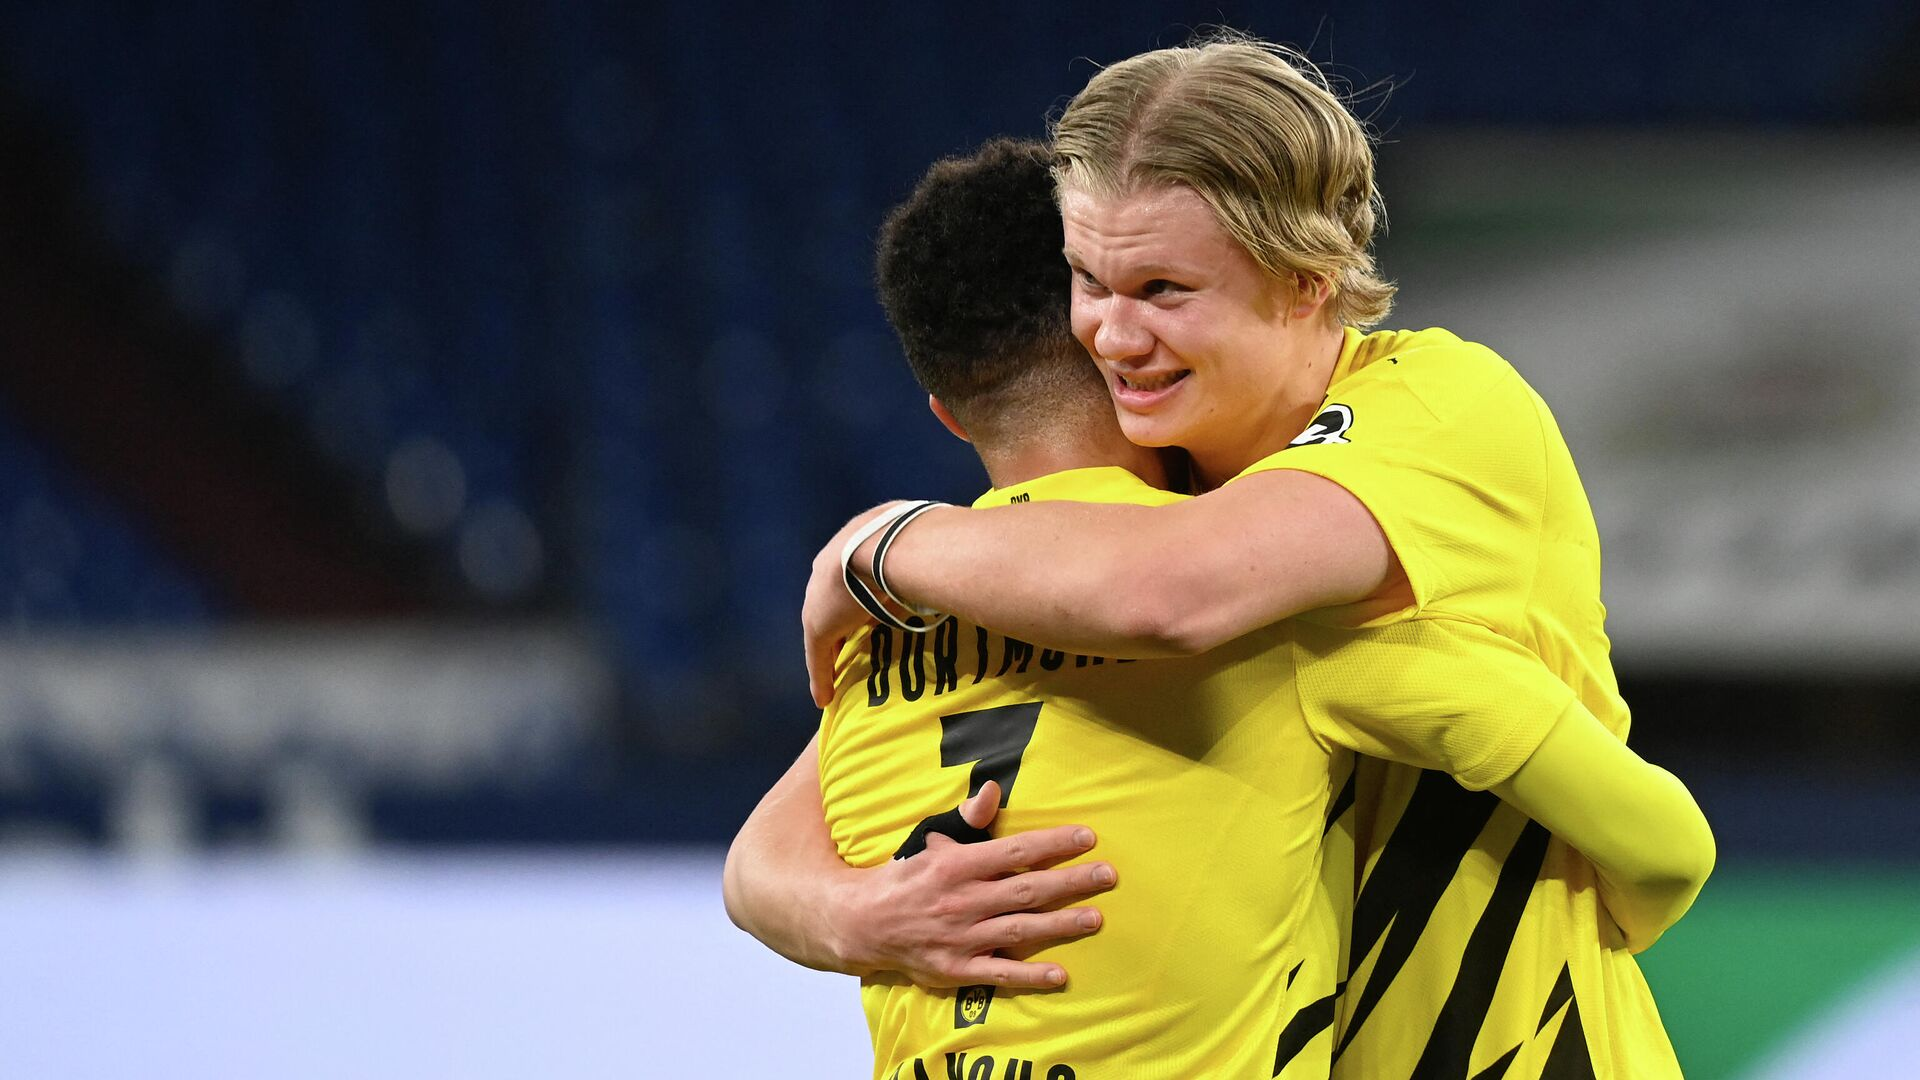 Dortmund's Norwegian forward Erling Braut Haaland (R) celebrates with Dortmund's English midfielder Jude Bellingham after the German first division Bundesliga football match FC Schalke 04 vs Borussia Dortmund in Gelsenkirchen, western Germany, on February 20, 2021. - Dortmund won the match 4-0. (Photo by Ina Fassbender / various sources / AFP) / RESTRICTIONS: DFL REGULATIONS PROHIBIT ANY USE OF PHOTOGRAPHS AS IMAGE SEQUENCES AND/OR QUASI-VIDEO - РИА Новости, 1920, 20.02.2021